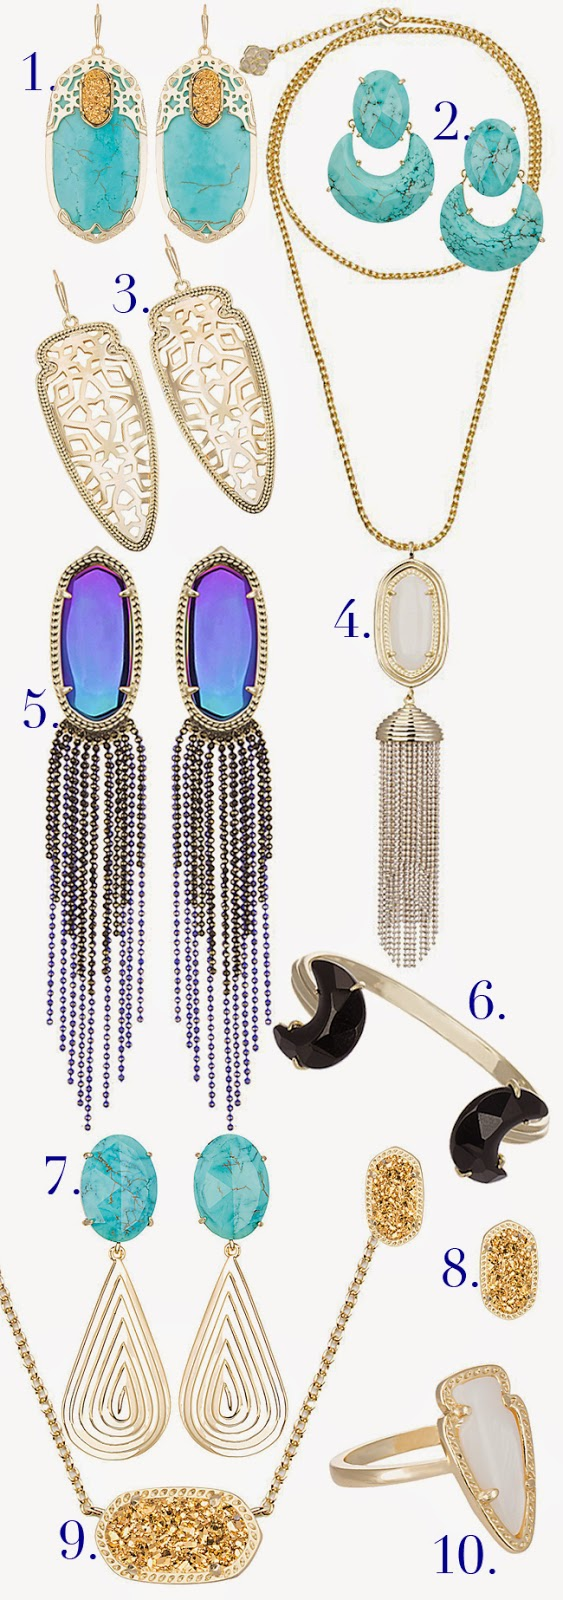 Kendra Scott Glam Rocks